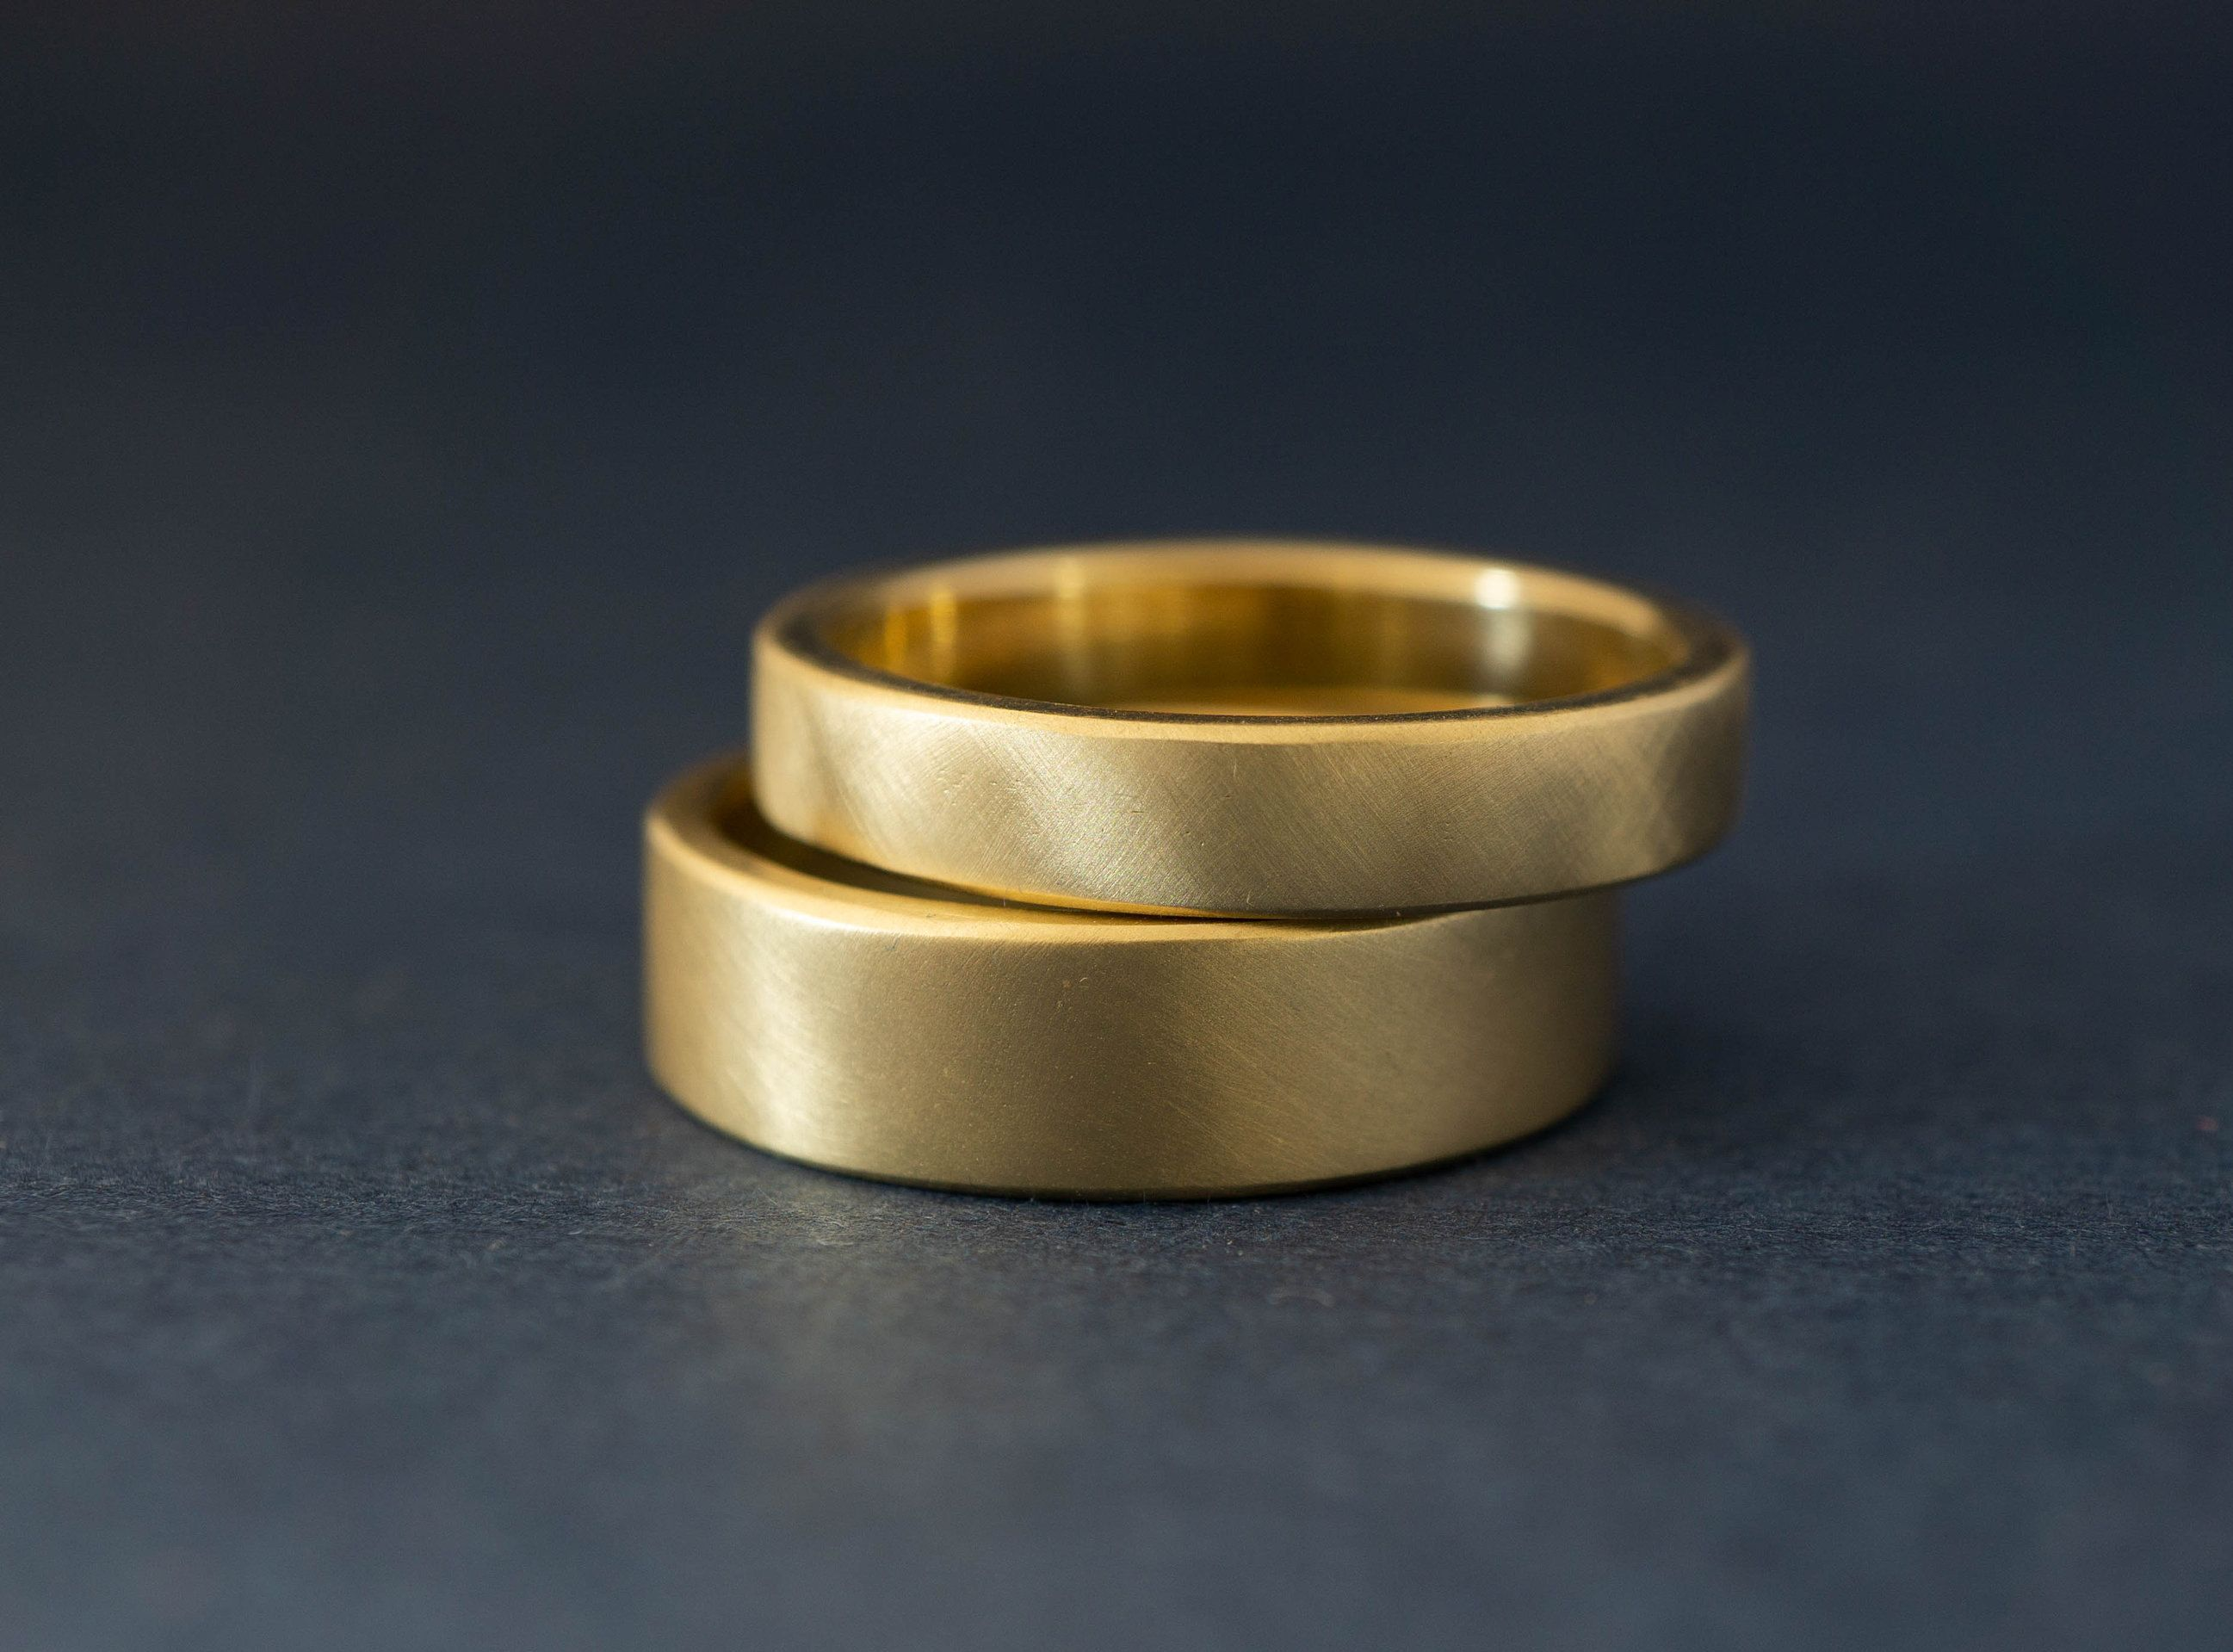 Yellow Gold Wedding Band Set His And Hers Wedding Bands Etsy Yellow Gold Wedding Band Gold Wedding Band Sets Wedding Band Sets